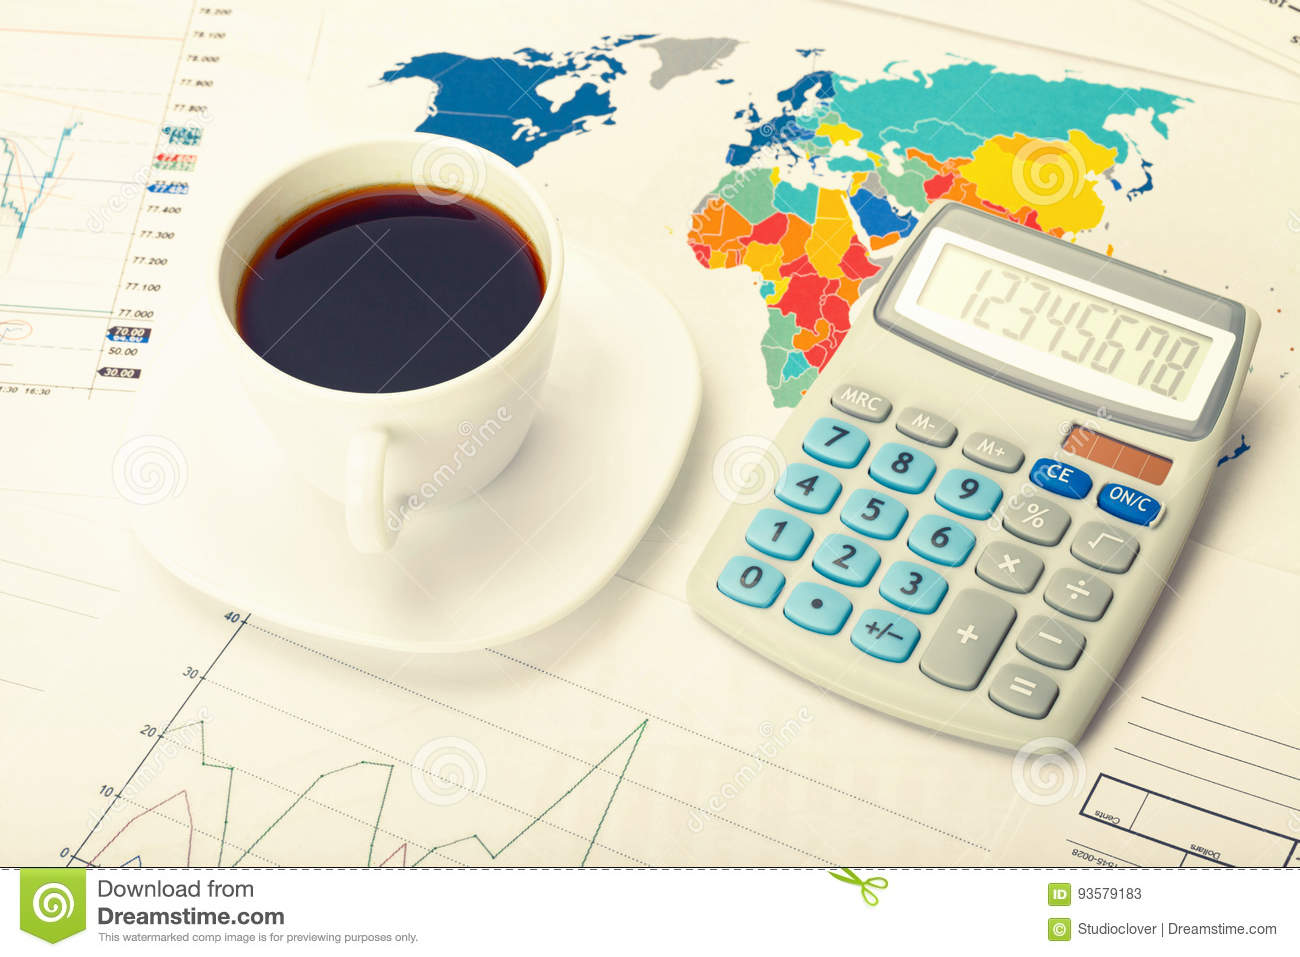 Coffee cup and calculator over world map and some financial charts. Filtered image: cross processed vintage effect.